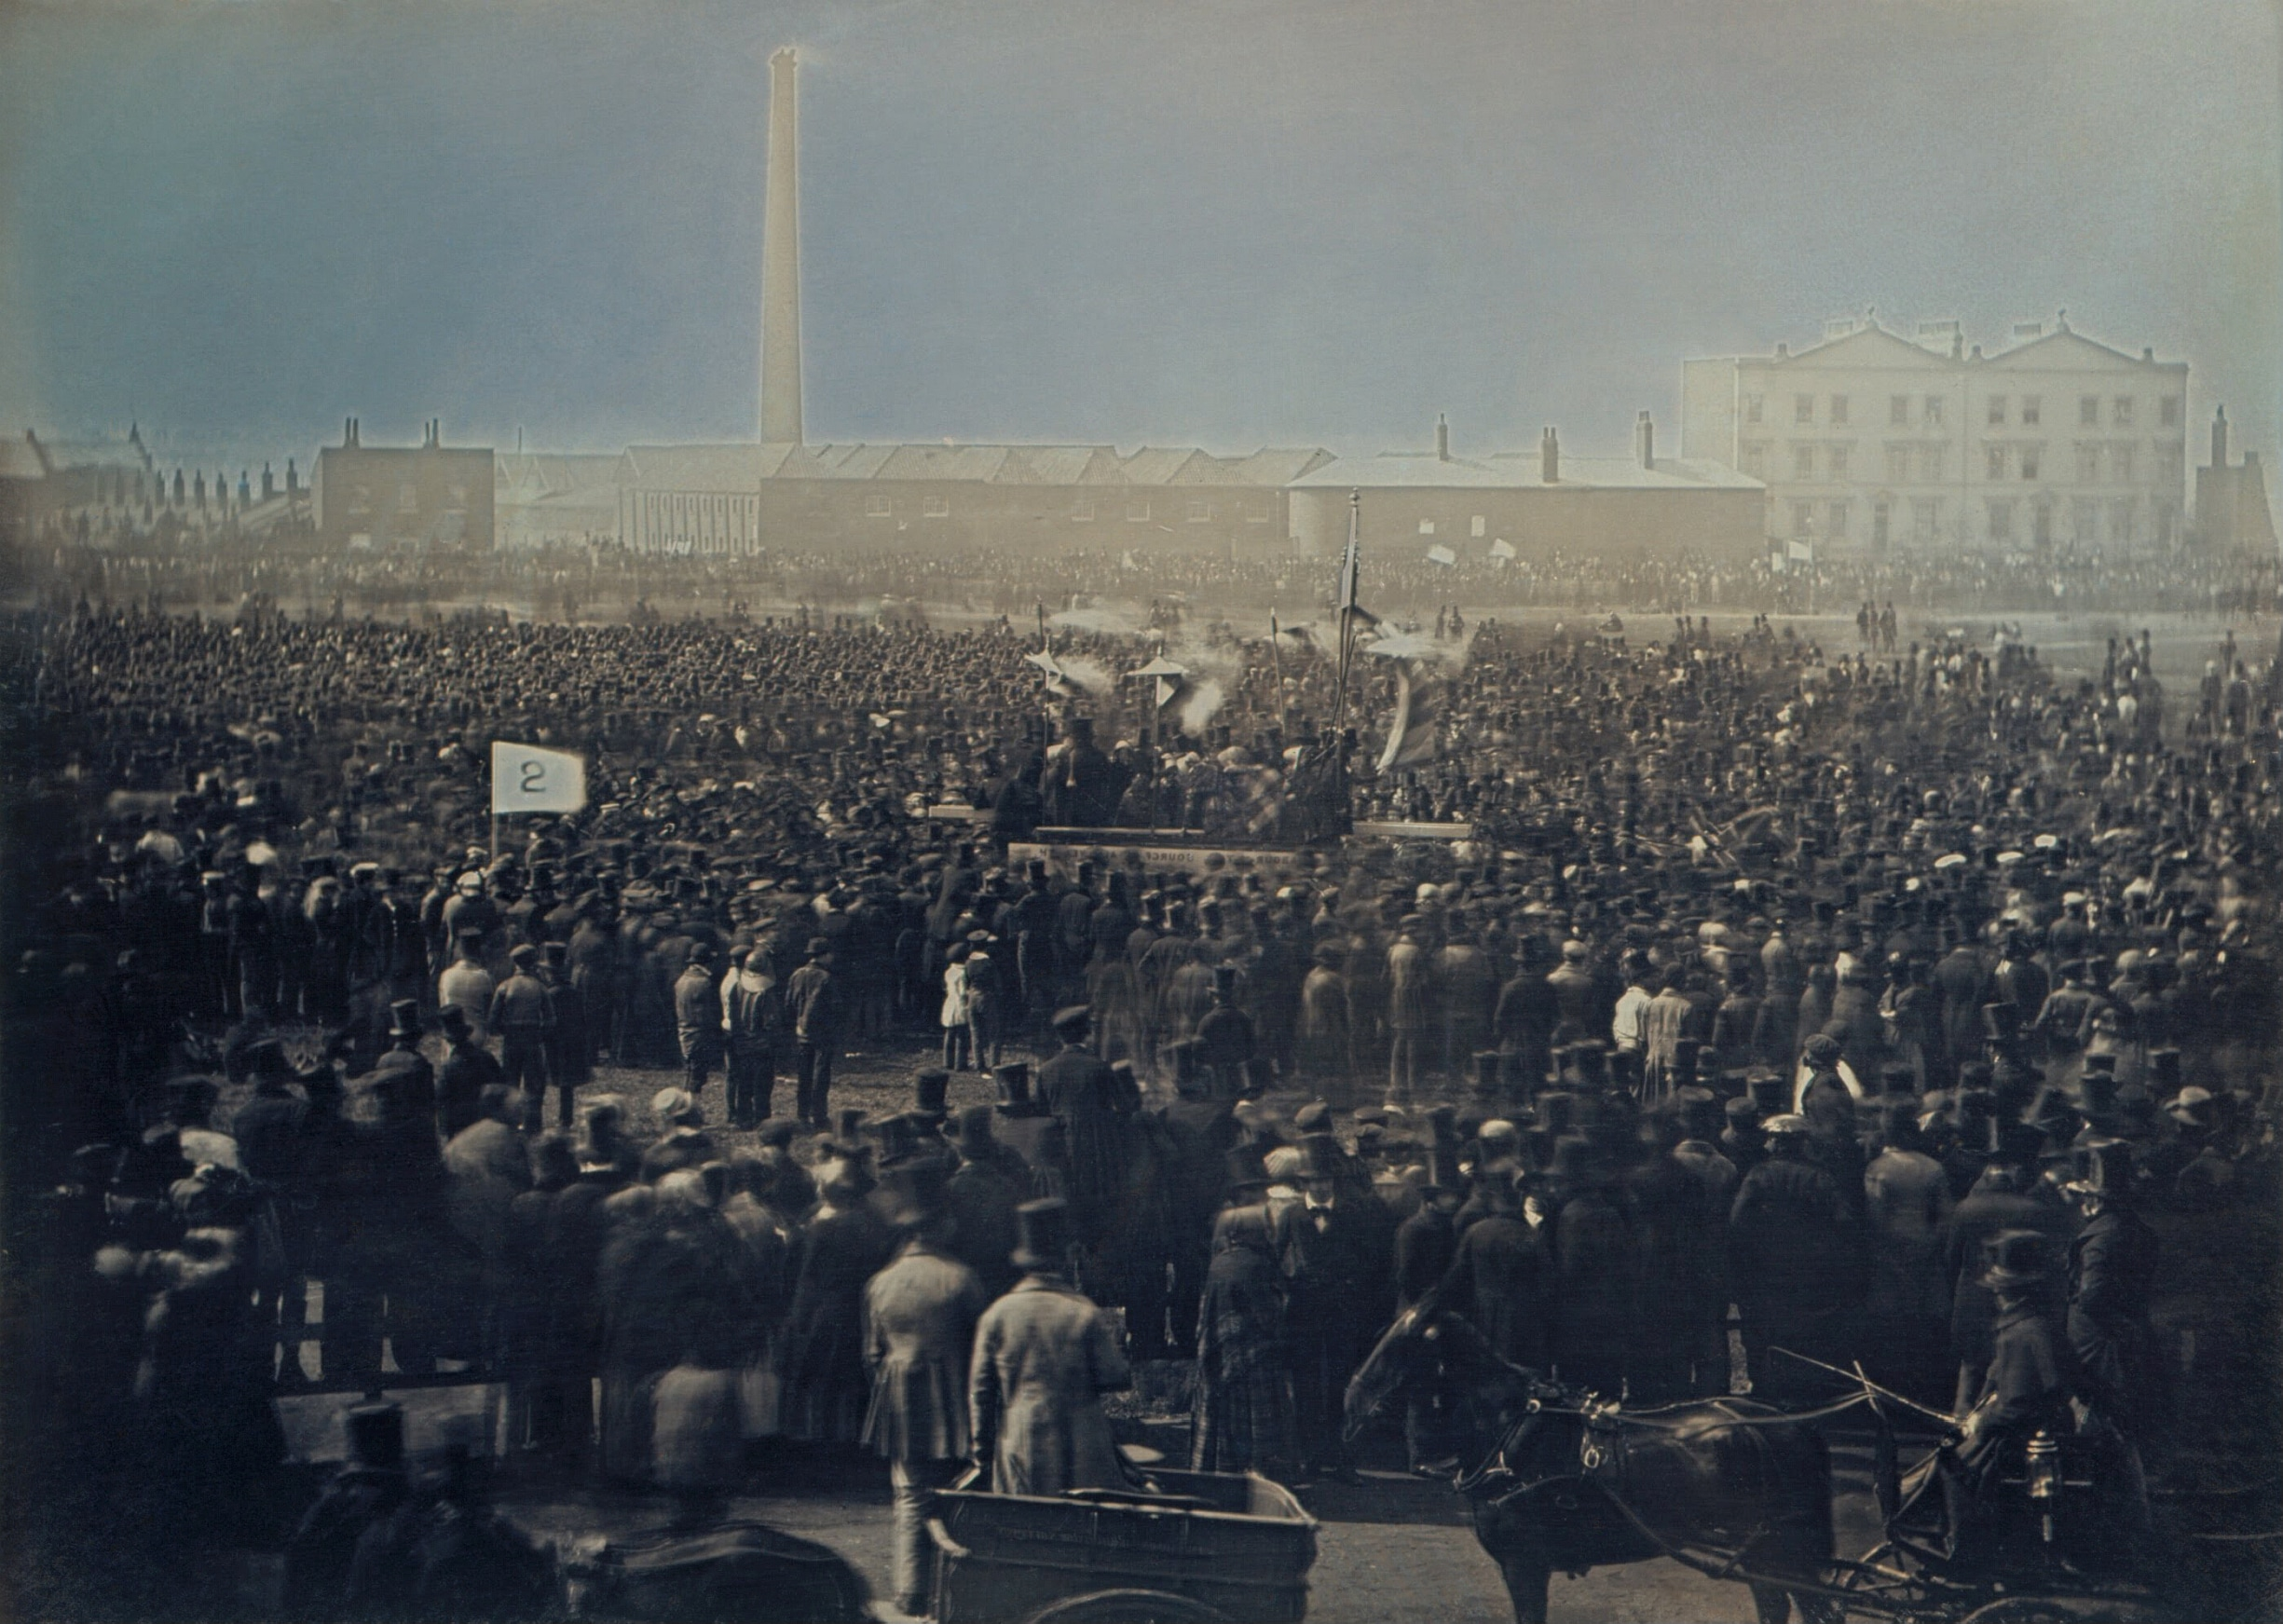 View of the Great Chartist Meeting on Kennington Common - 10 April 1848. Photo (Daguerreotype) by William Edward Kilburn (1818-1891). Restored by Bammesk. Public Domain.